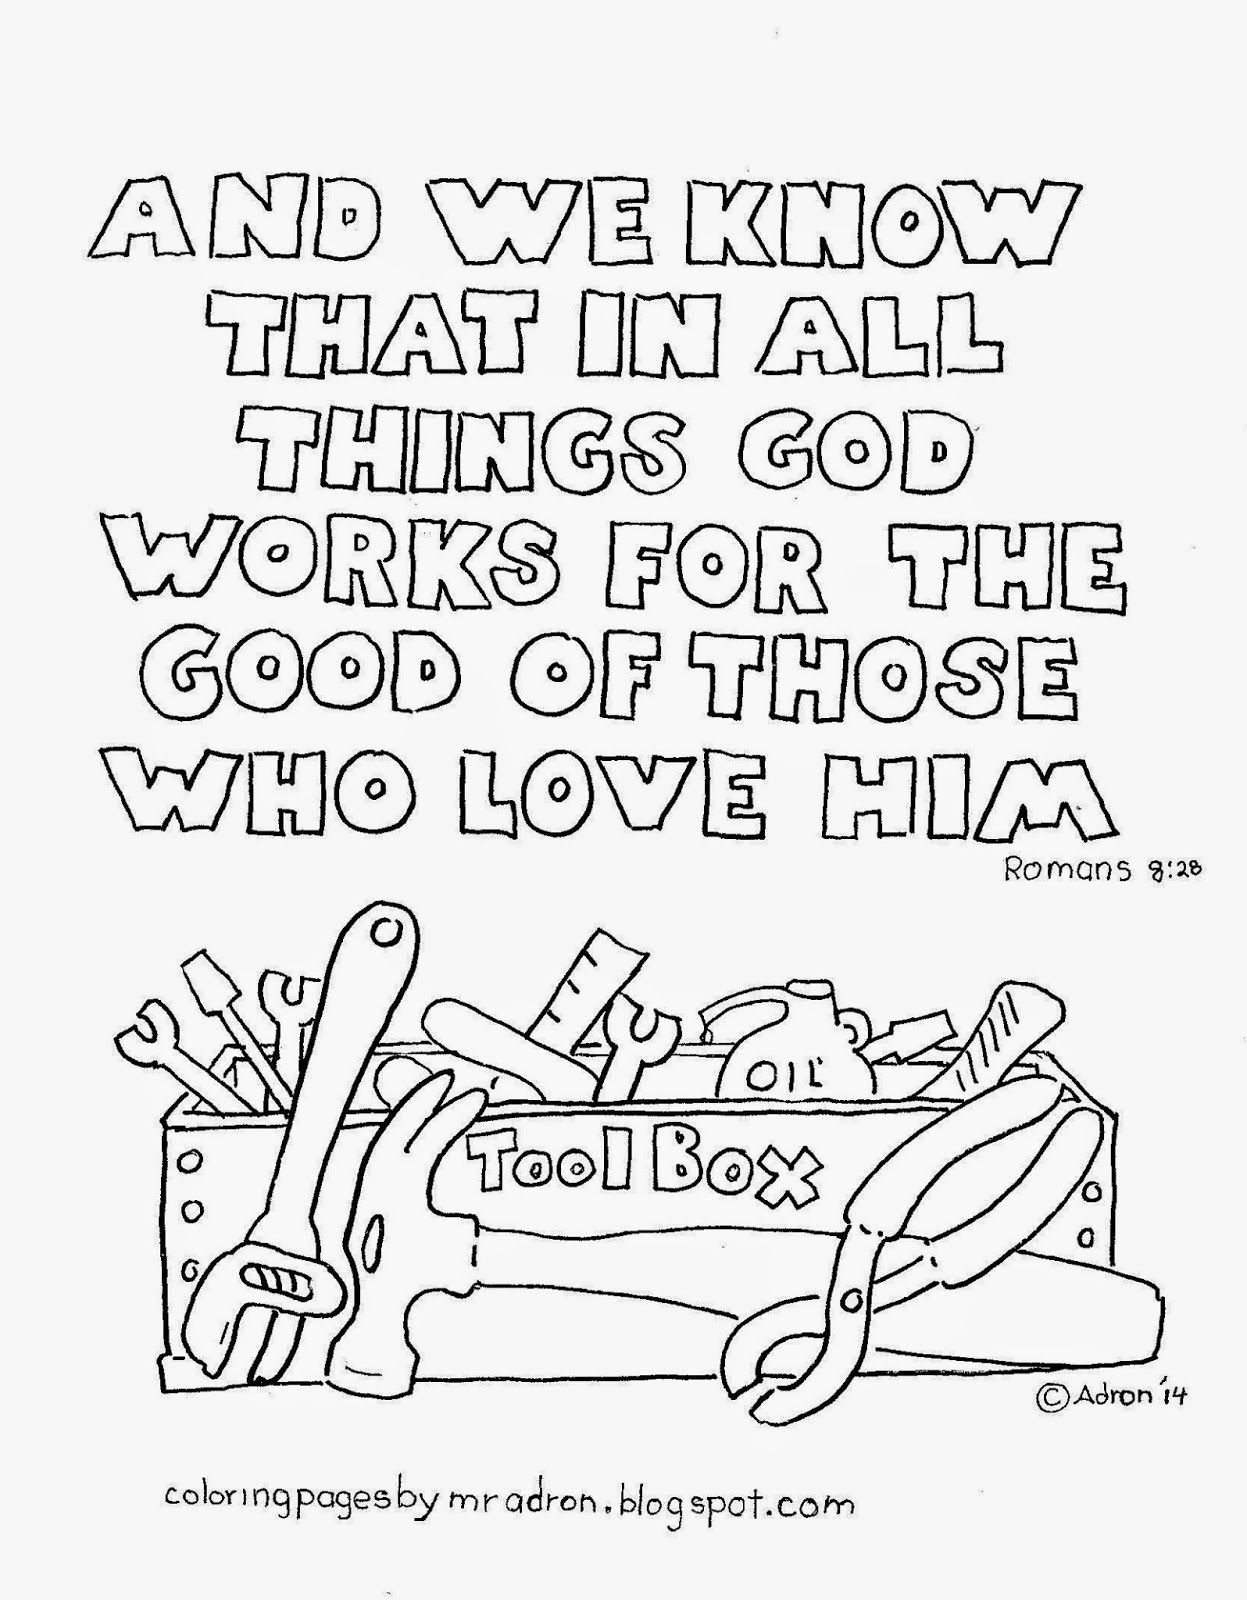 Coloring Pages for Kids by Mr. Adron: In Everything God Works For ...